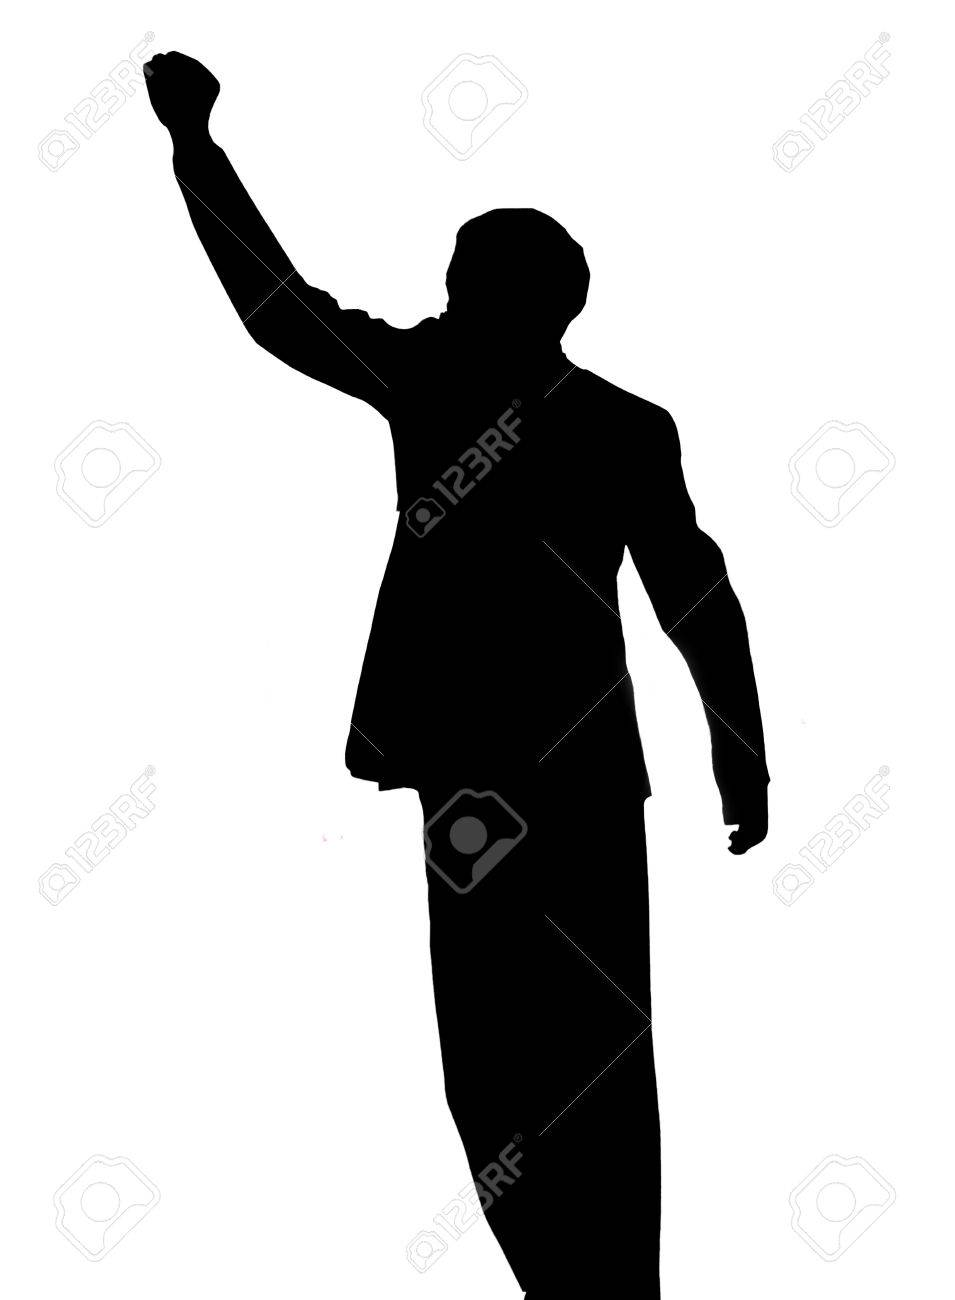 A silhouette image of Nelson Mandela - 24495539